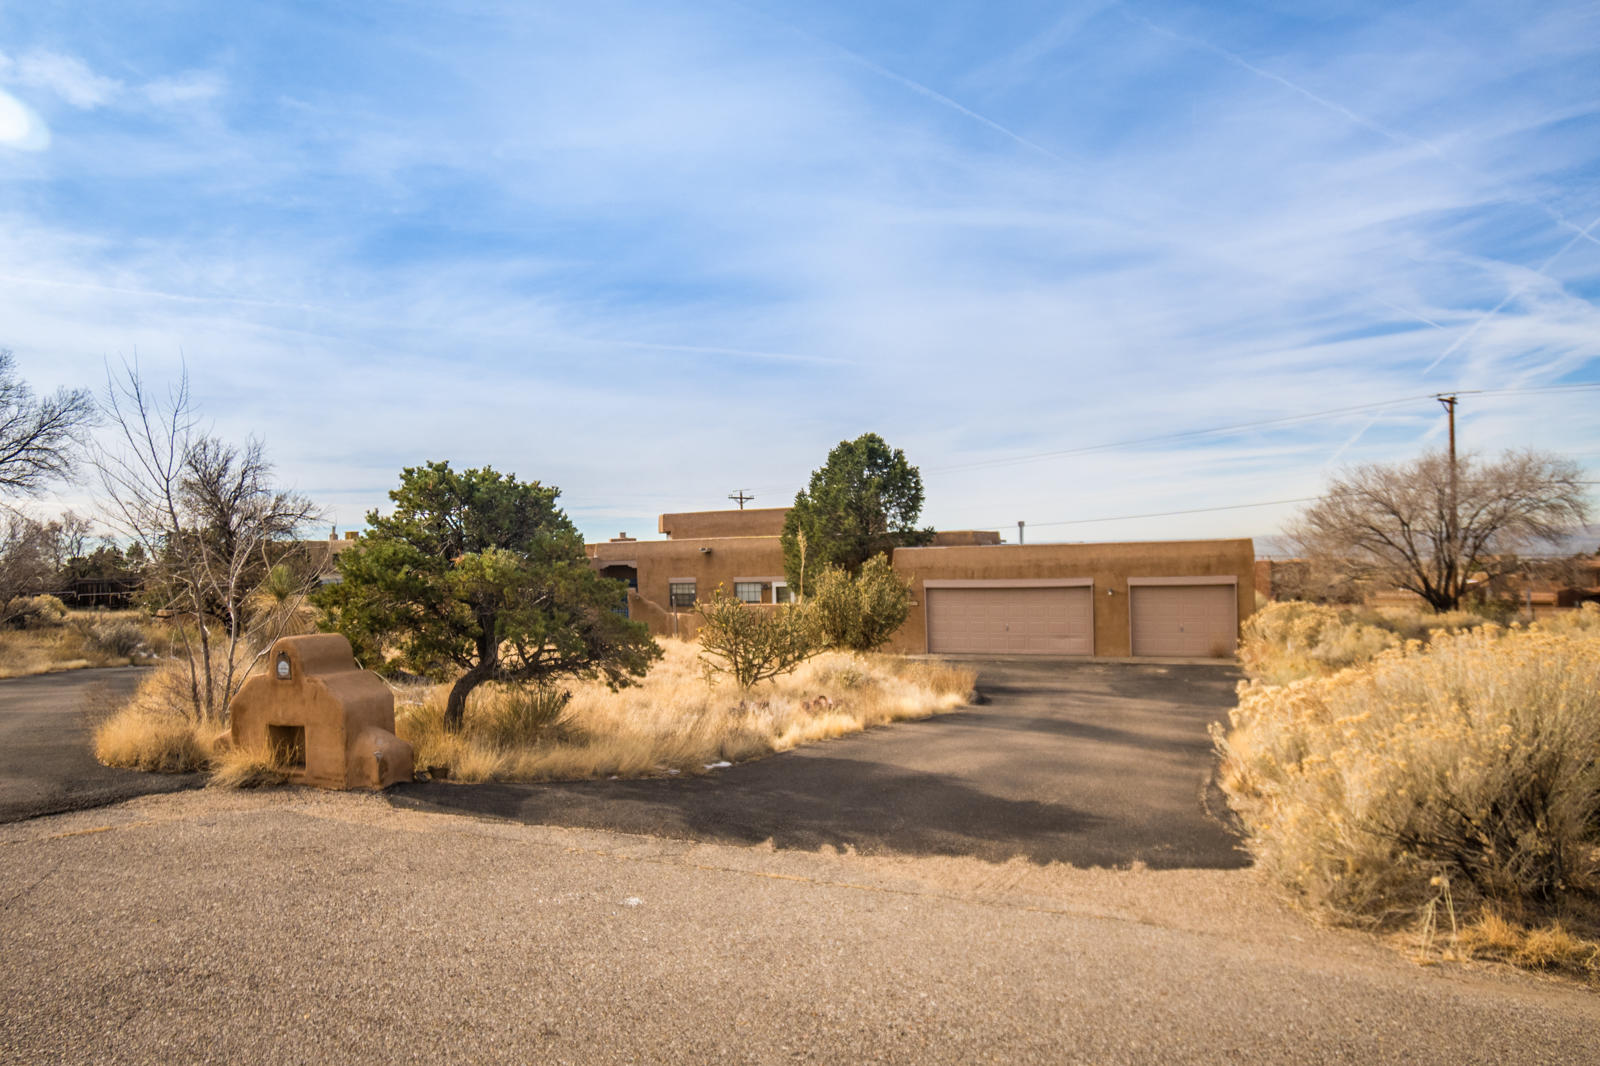 Fantastic views of Albuquerque from the home that sits on the center of a Cul de Sac drive. Front driveway is asphalt and is a circle driveway. Newly painted interior with new carpet and tile inside the home. Separated Master suite from other bedrooms. Front courtyard. Back covered patio area.